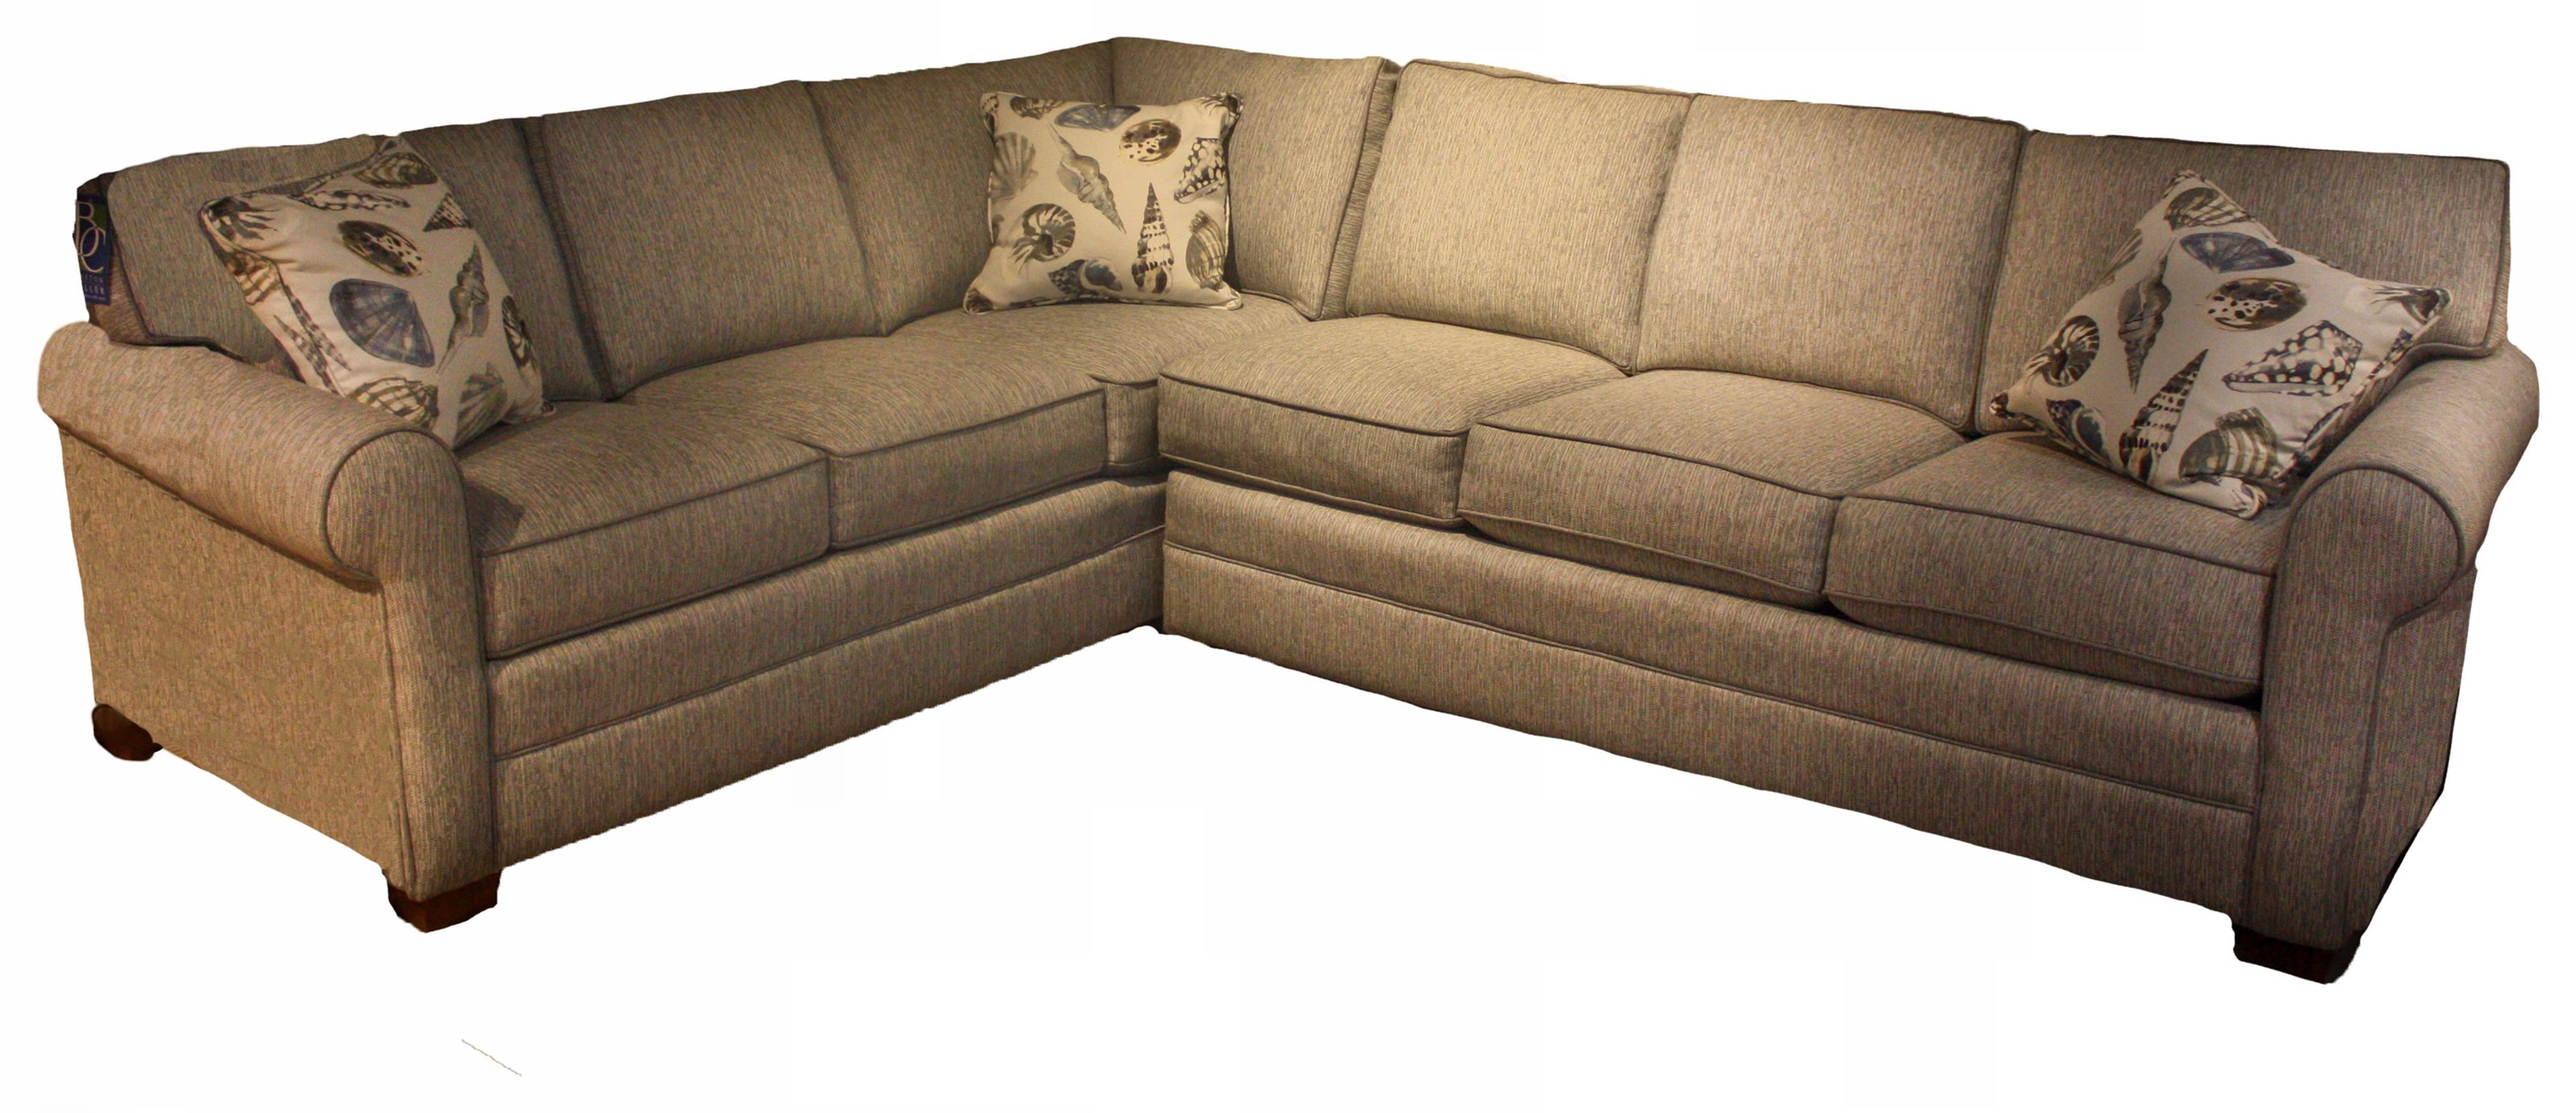 728 6 Seat Sectional by Braxton Culler at Esprit Decor Home Furnishings